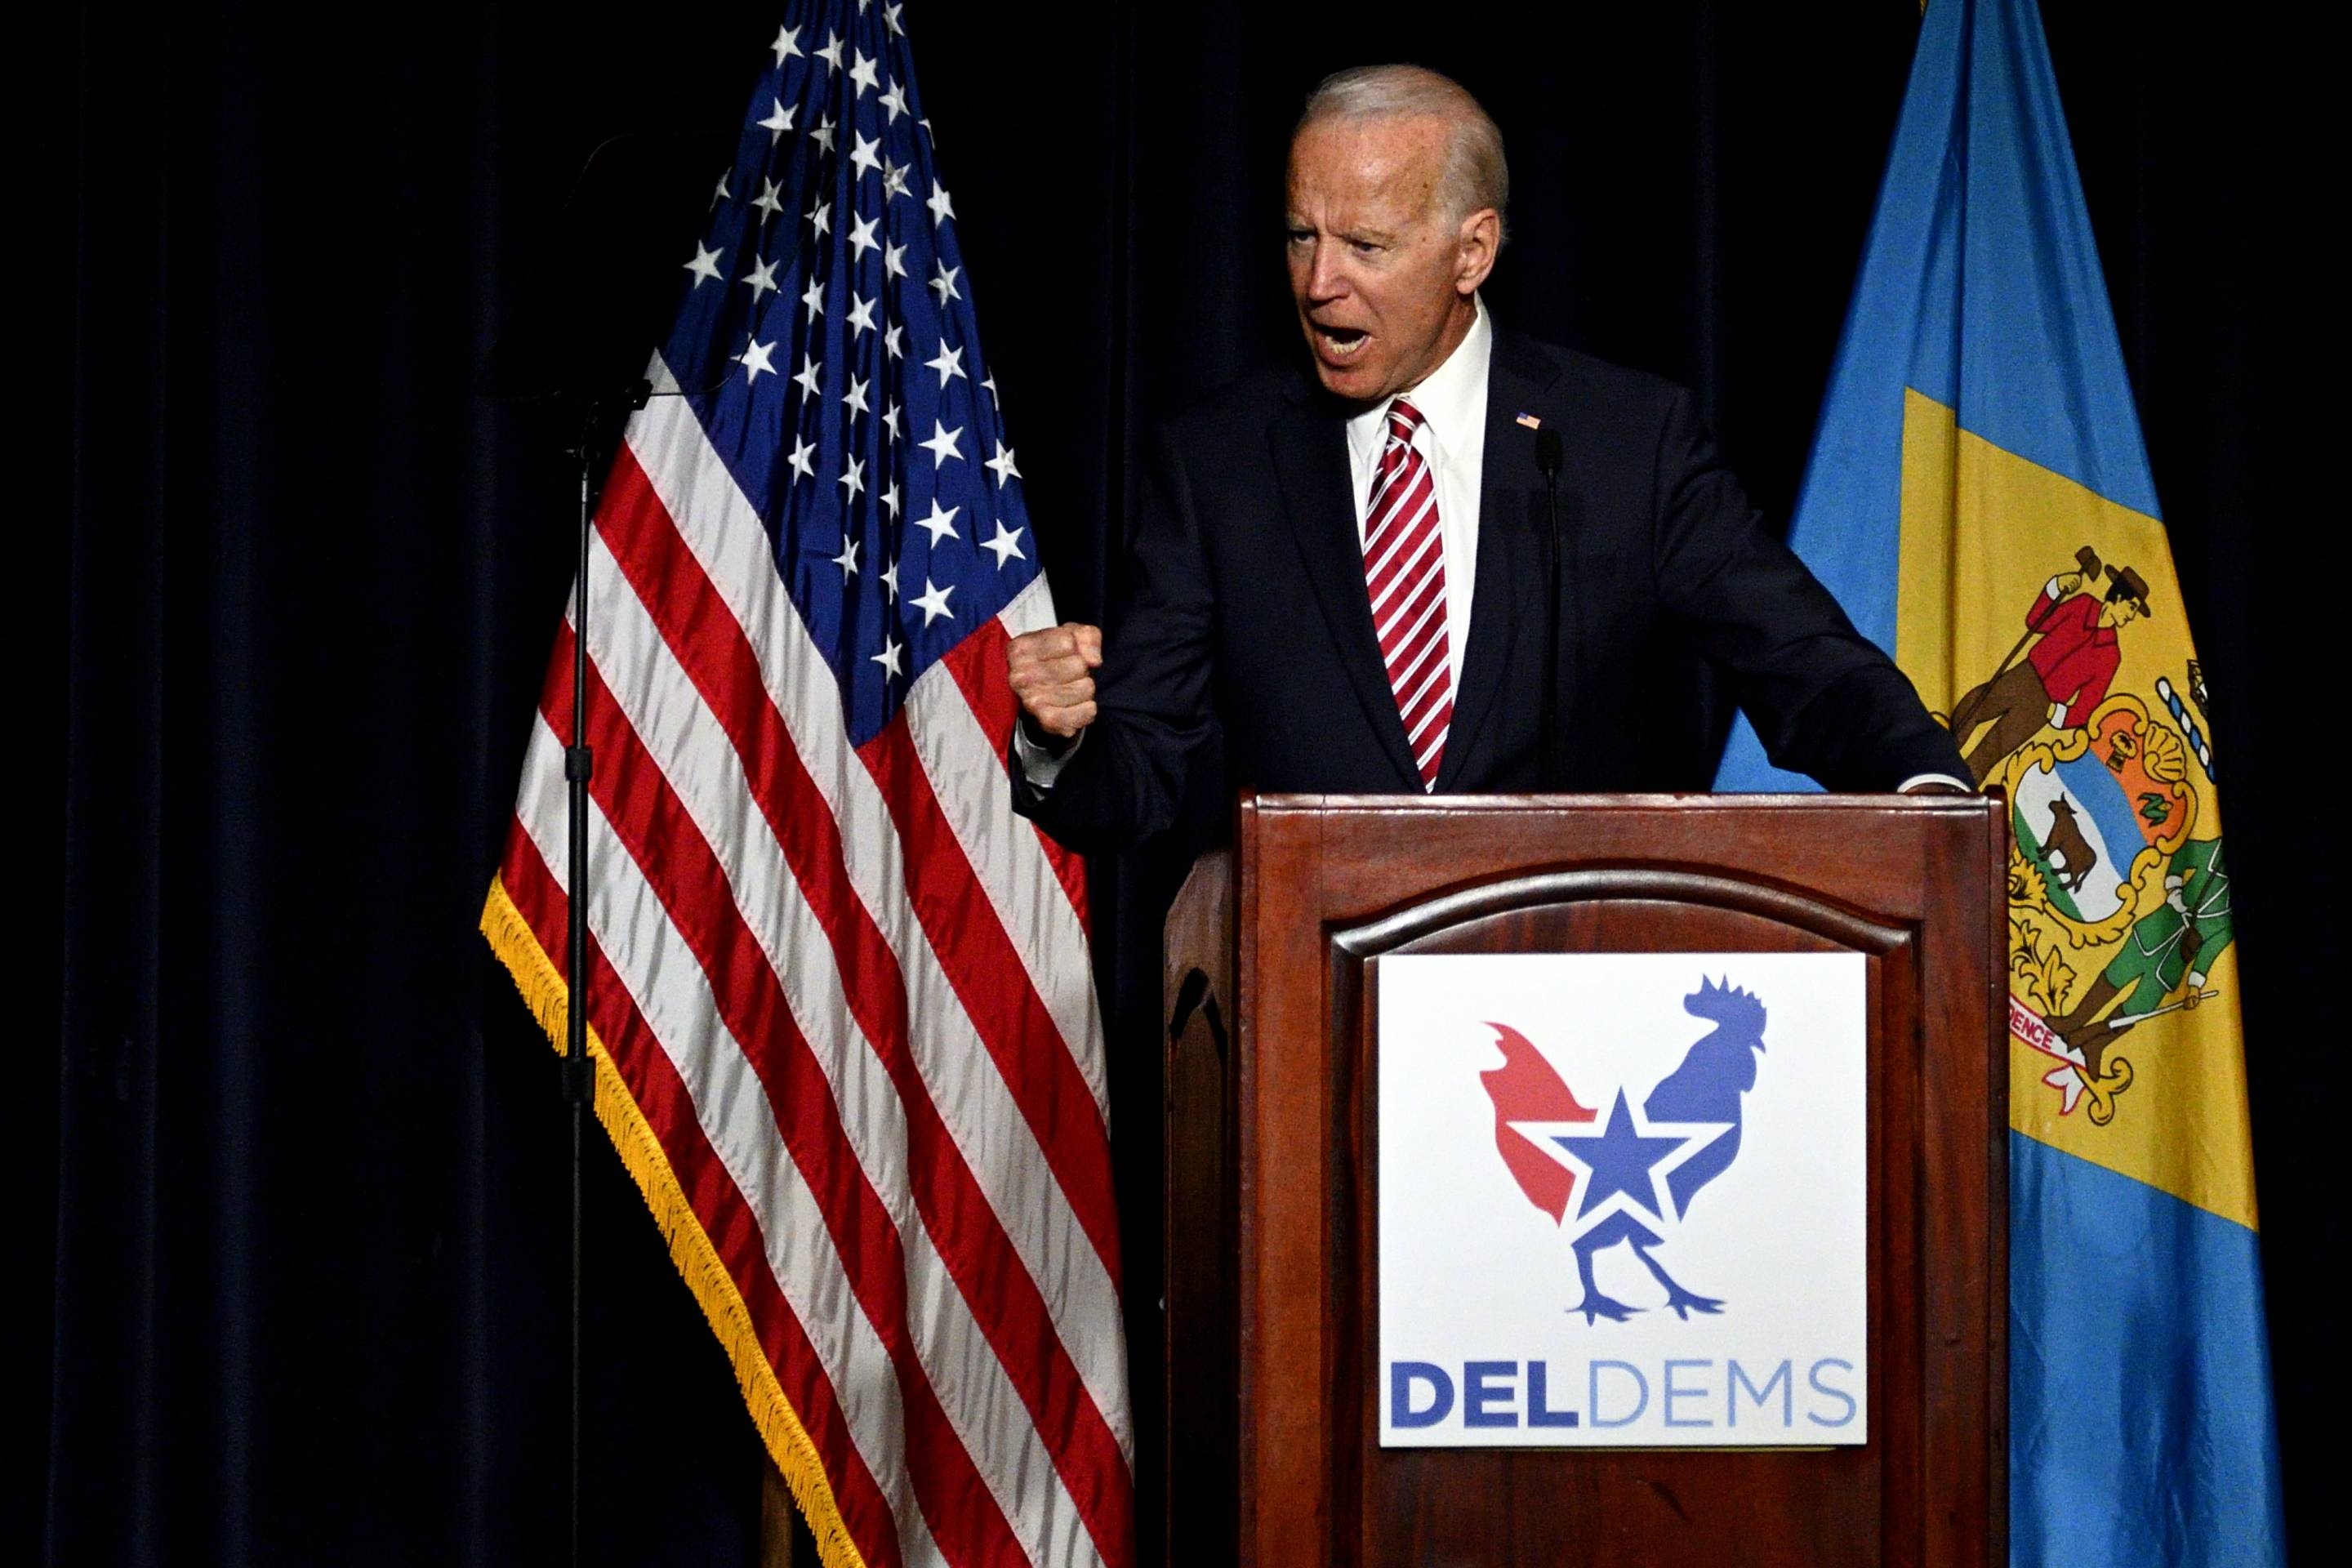 DE: Former Vice President Joe Biden Keynotes First State Democratic Dinner